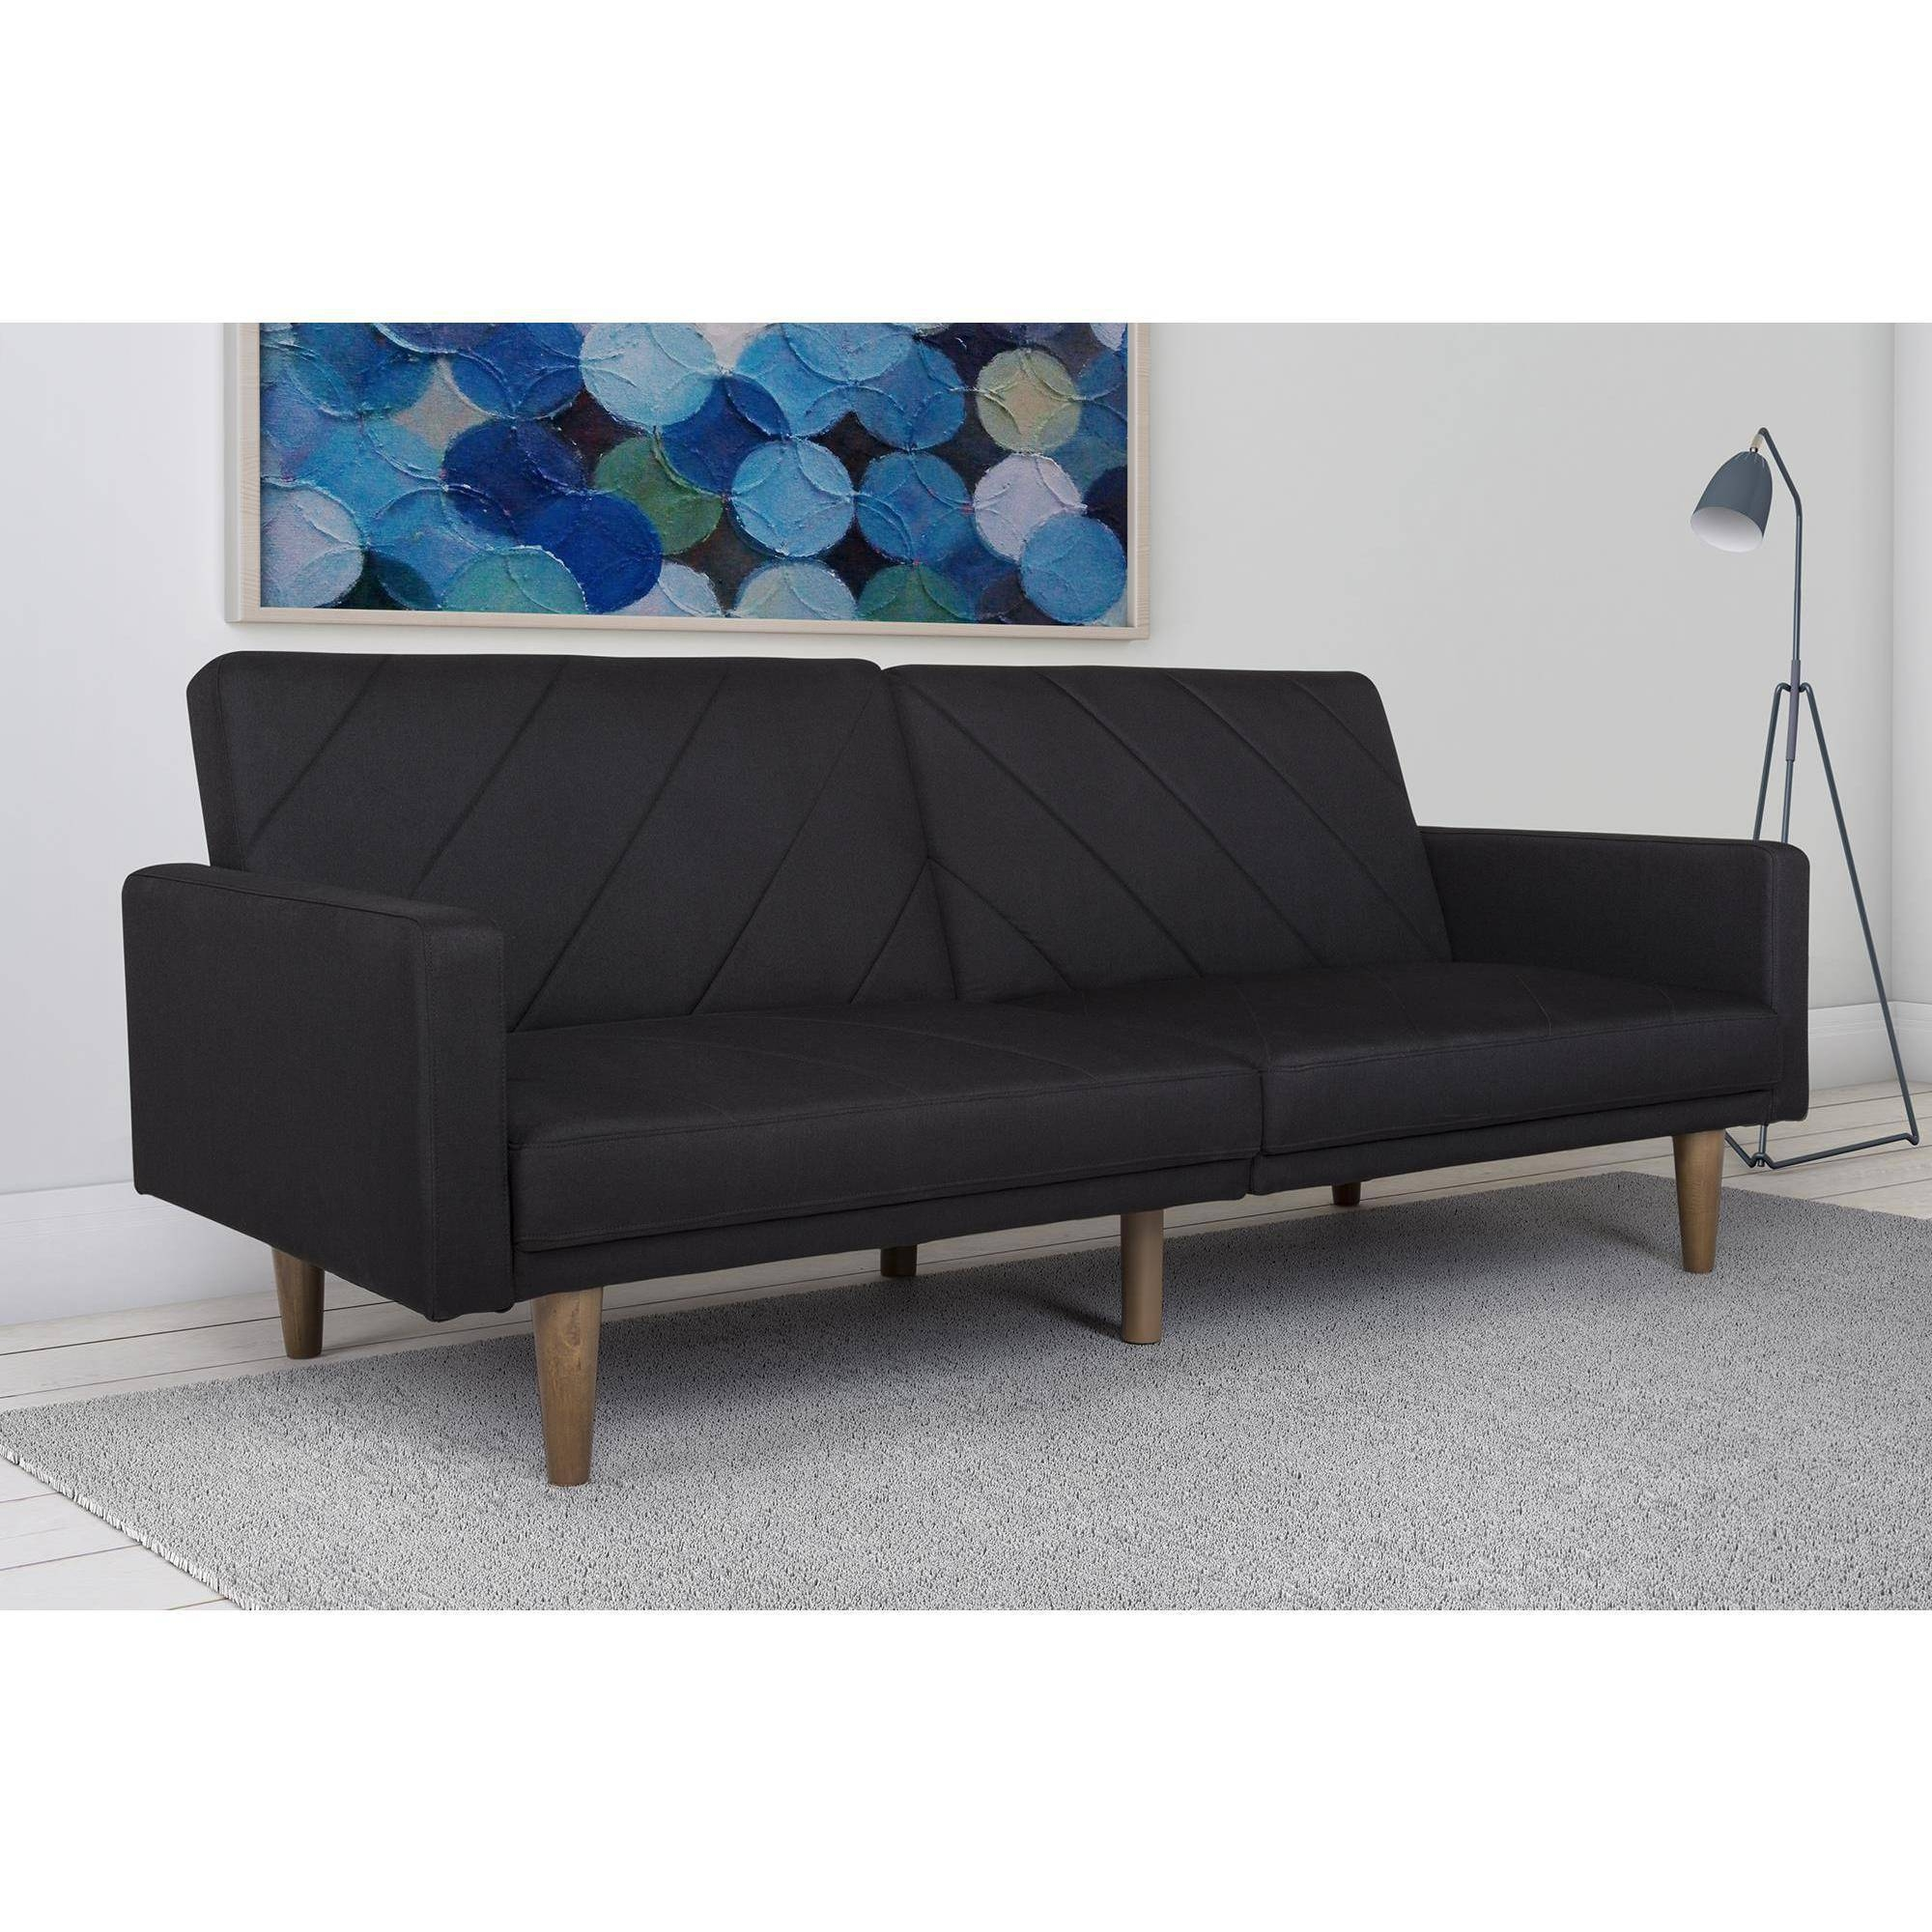 Furniture: Target Futon Mattress | Walmart Futon Beds | Walmart for Target Couch Beds (Image 10 of 15)